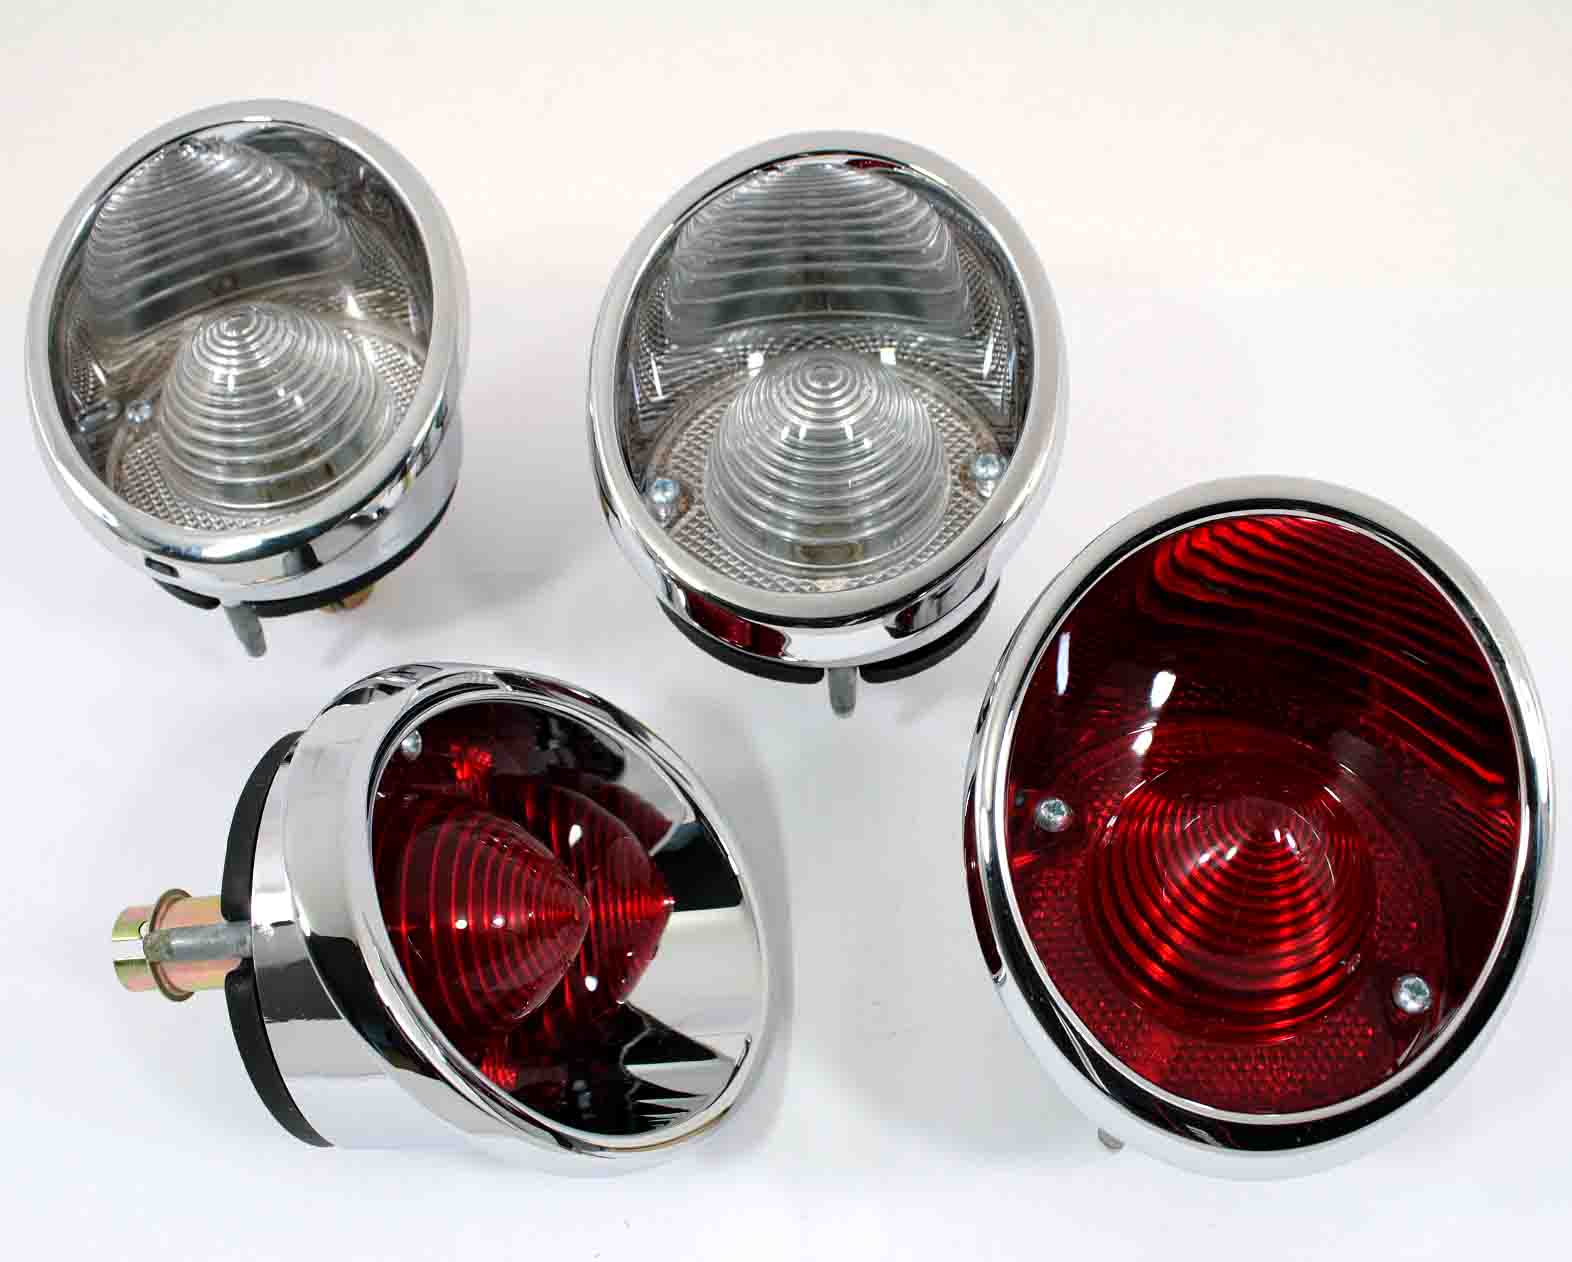 64 65 66 Corvette Rear Tail Light Assembly Set (4) New